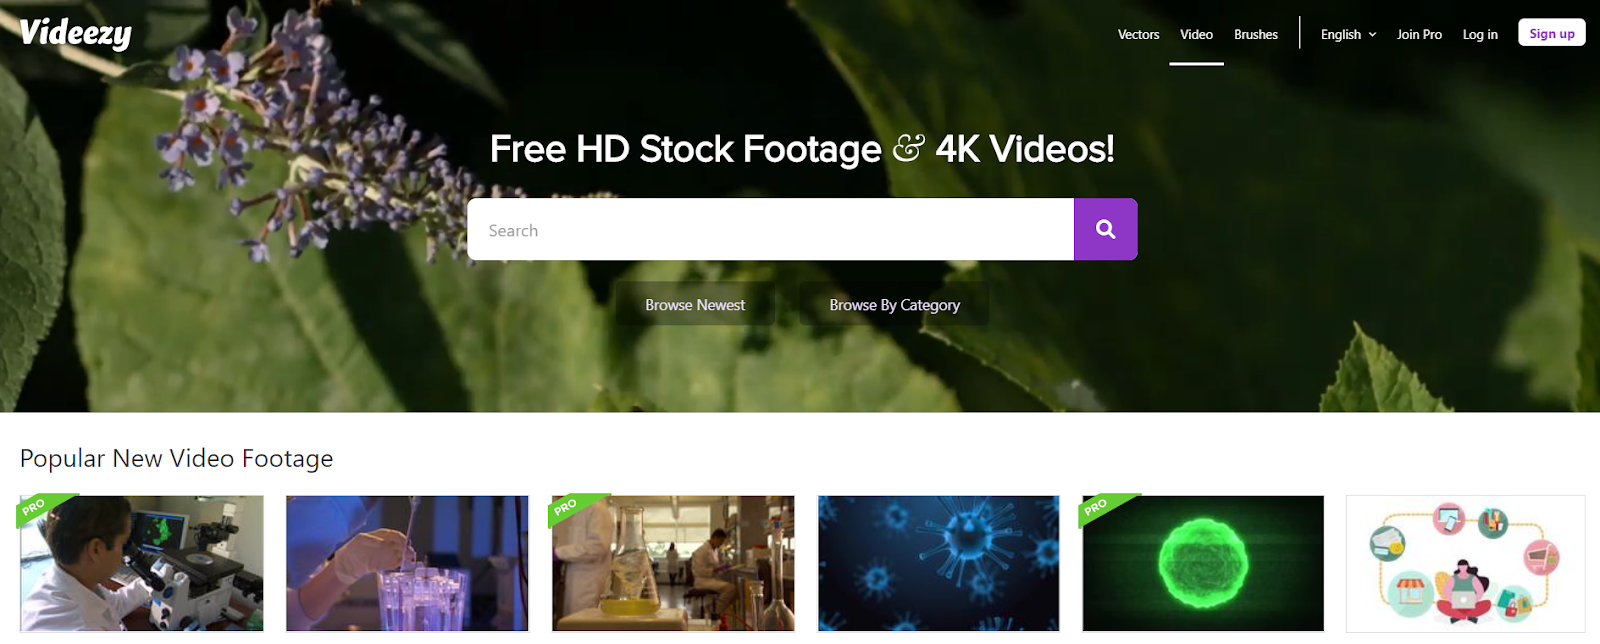 videezy is a website for stock footage